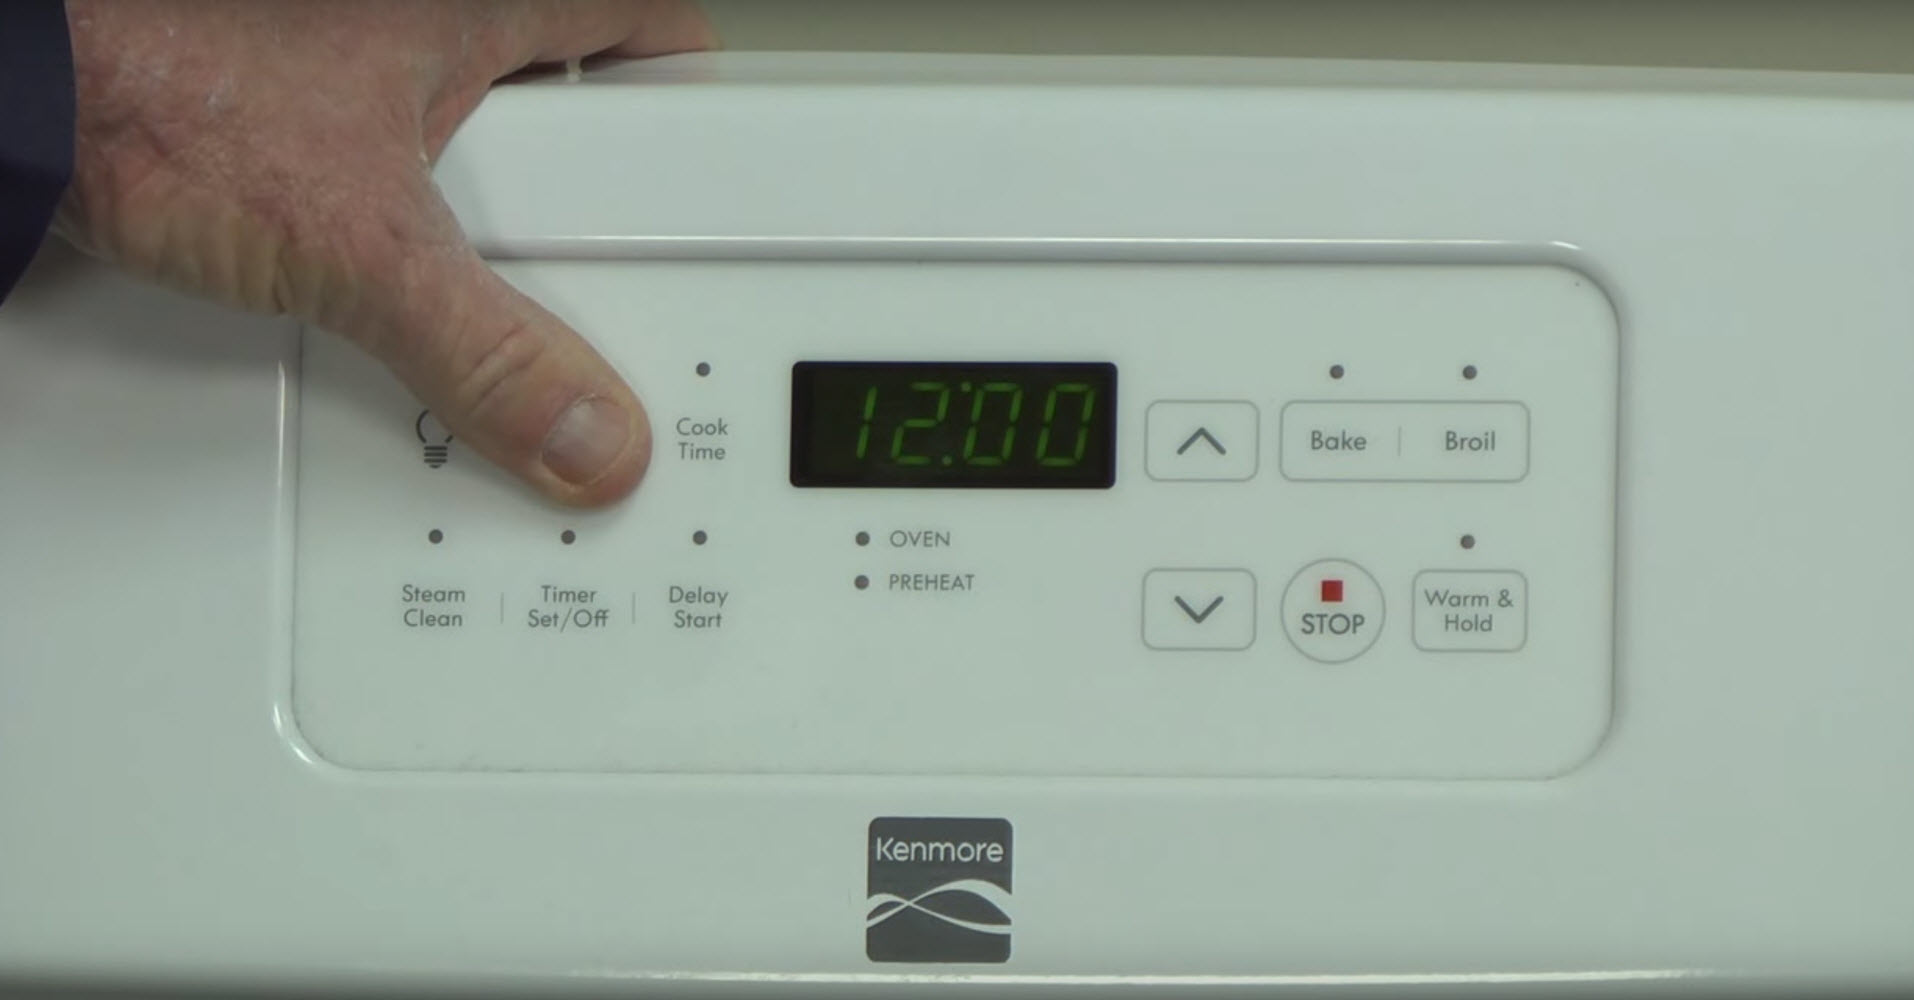 How to replace a range oven door switch | Repair guide